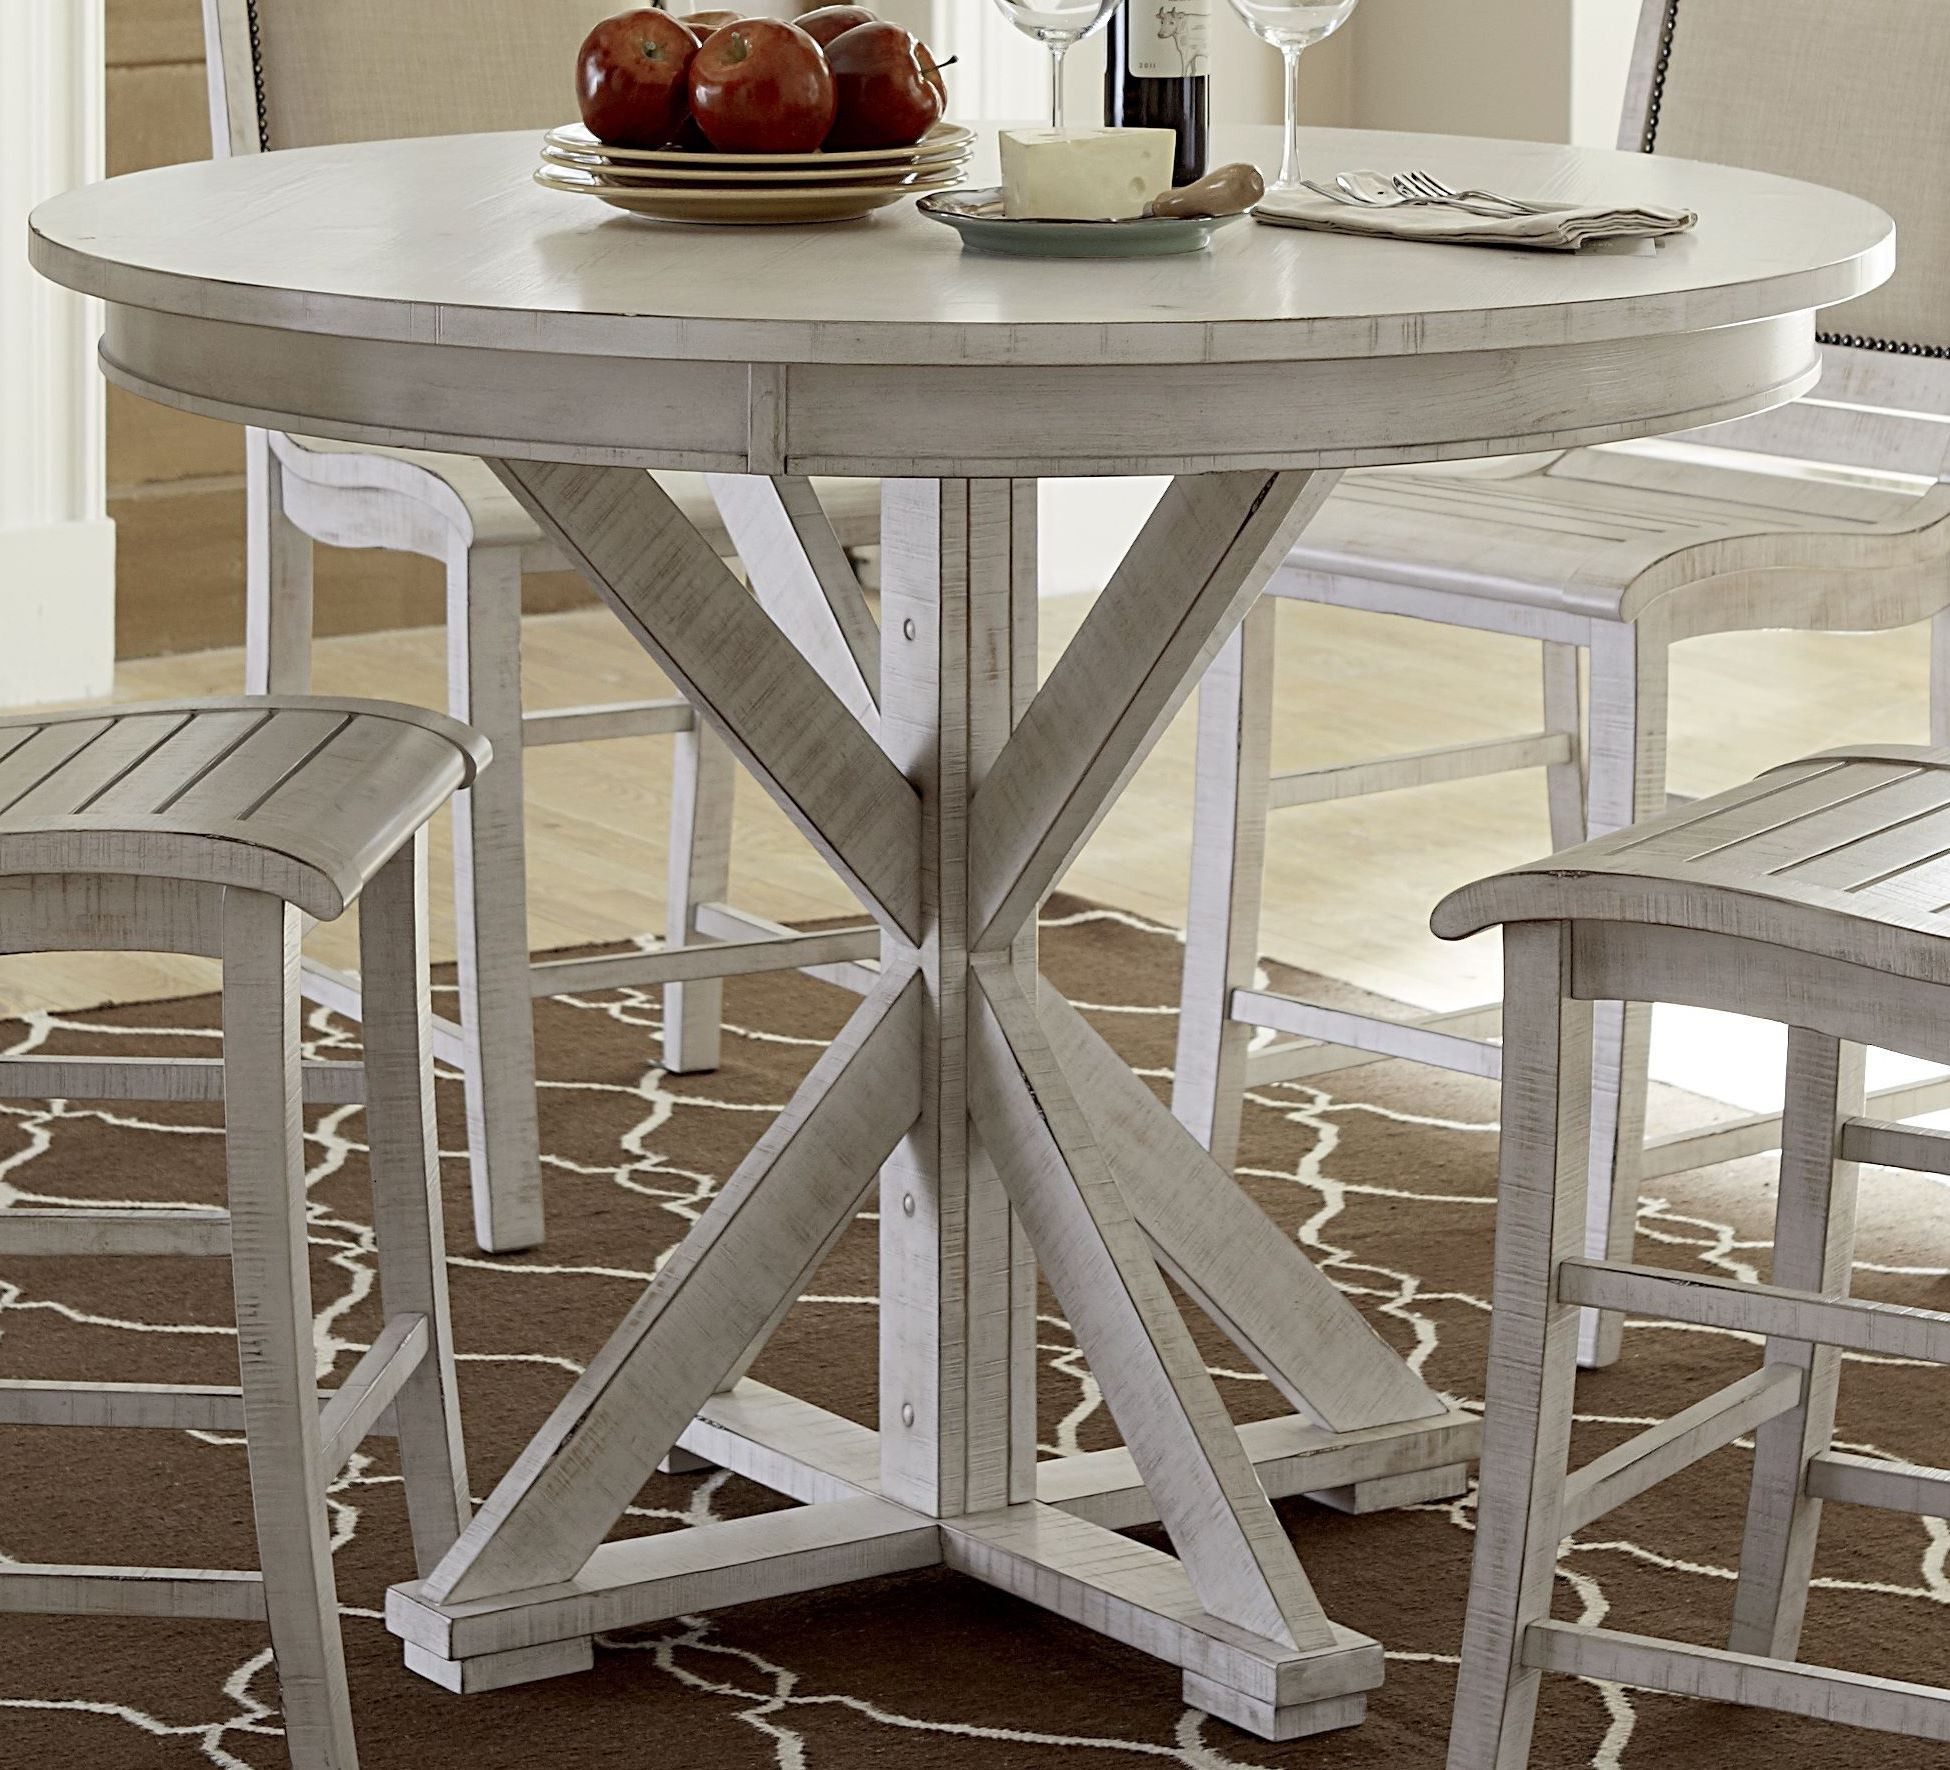 Willow distressed white round counter height dining table for White round dining table